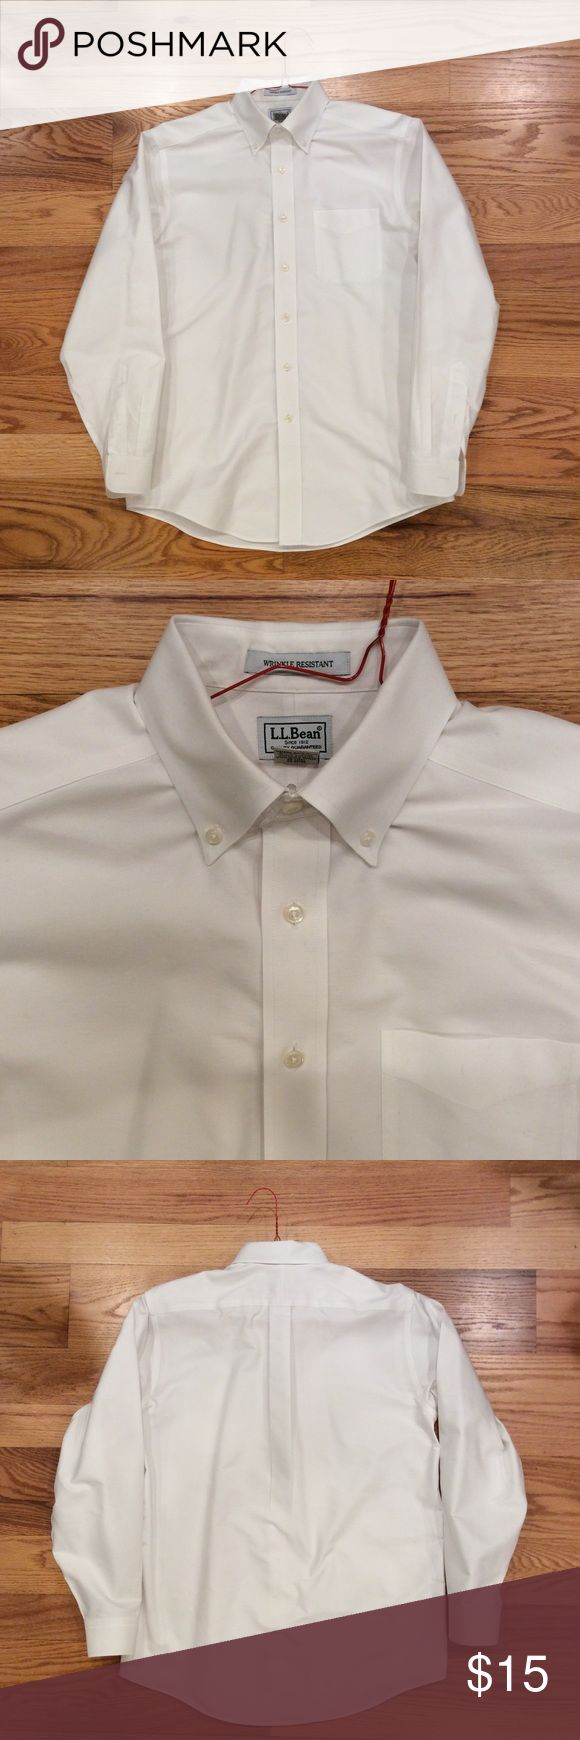 Men's LL Bean White Oxford Shirt LL Bean 100% cotton button down Oxford dress shirt. Wrinkle resistant substantial weight cotton. Excellent condition. Size 15 neck, 34 sleeve length. Comment with any questions or make an offer. LL Bean Shirts Dress Shirts